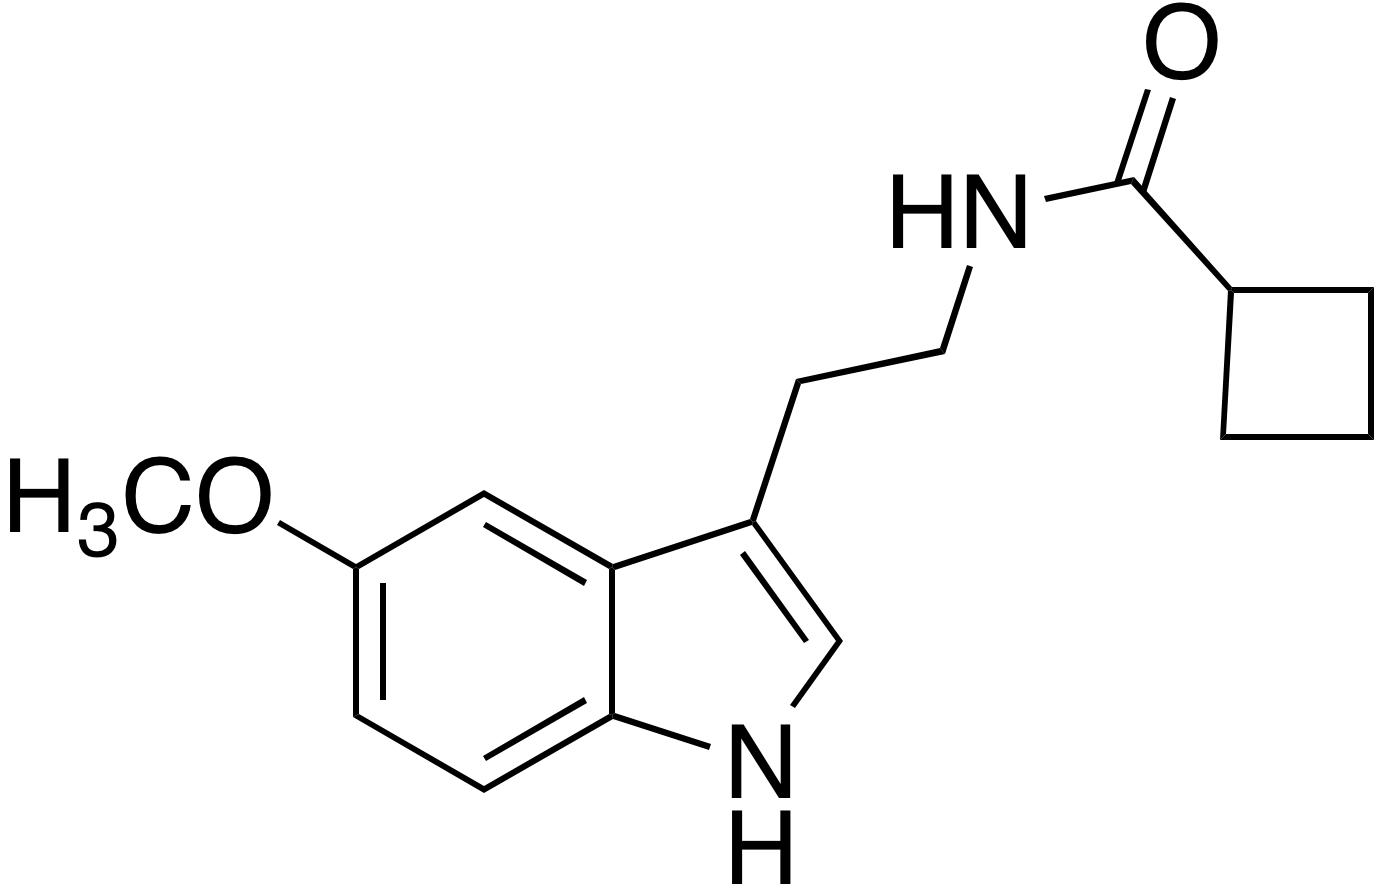 N-Cyclobutanoyl-5-methoxytryptamine